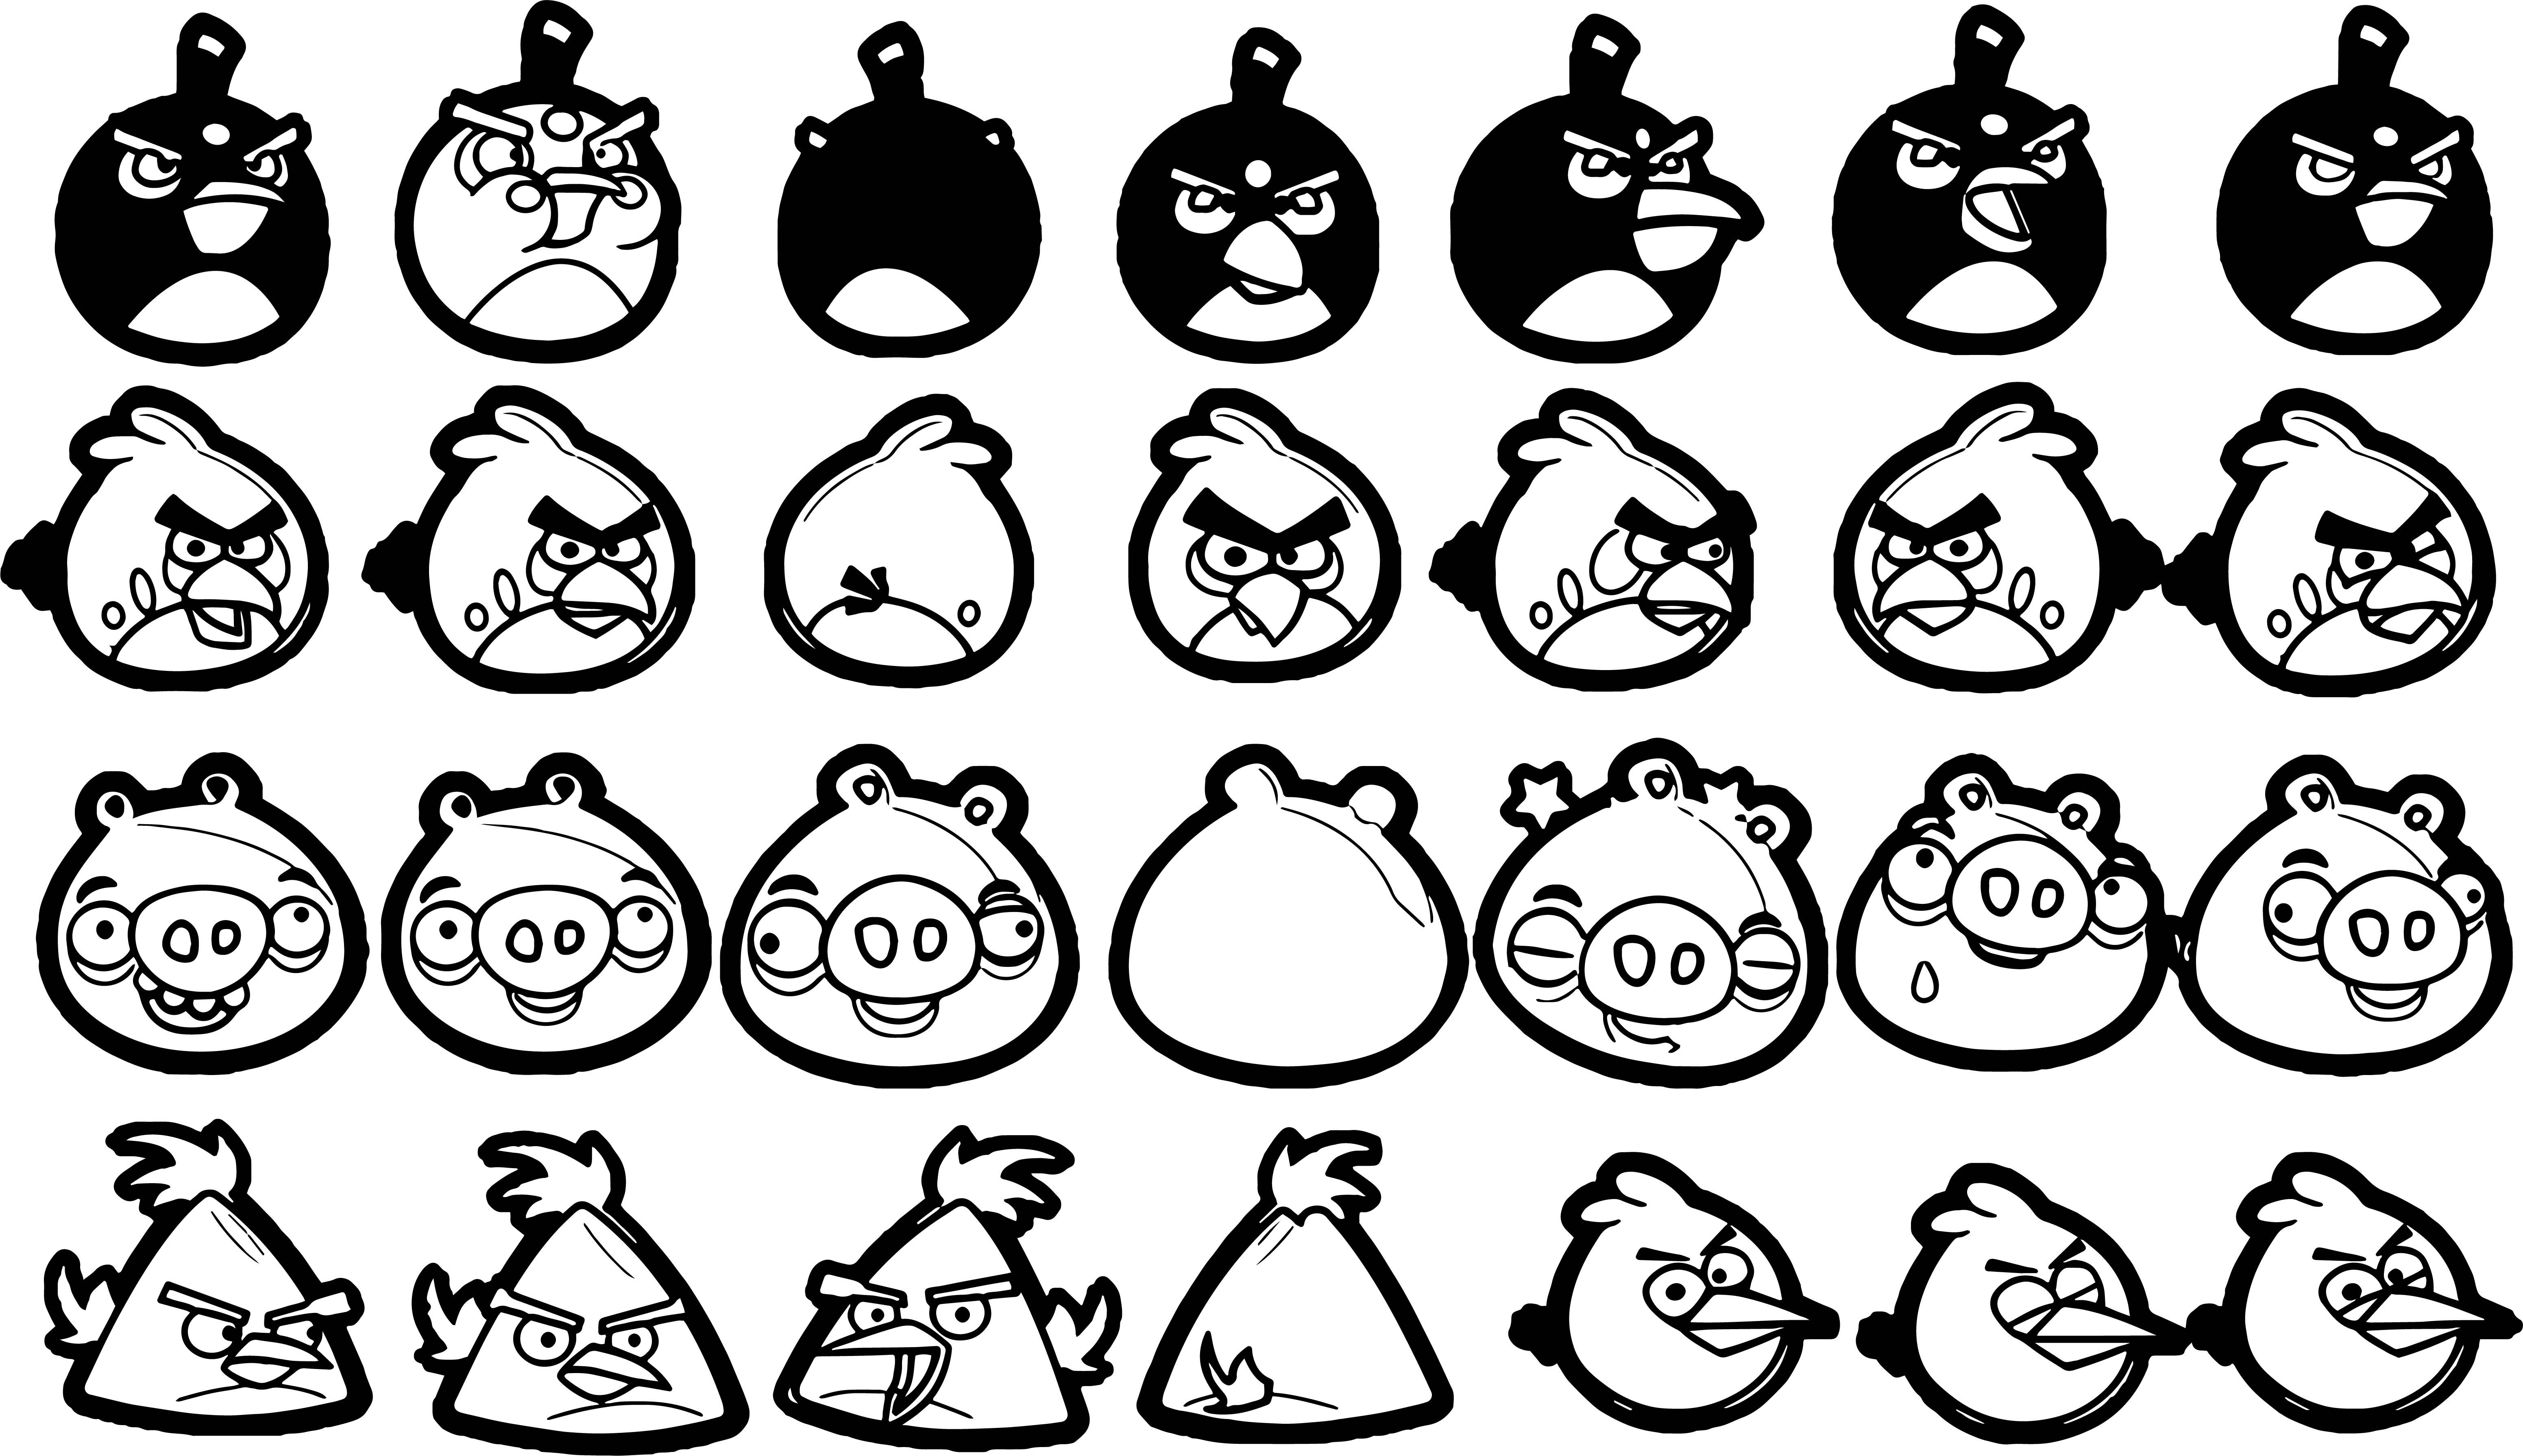 Cool Angry Bird Characters Coloring Page Coloring Pages Bird